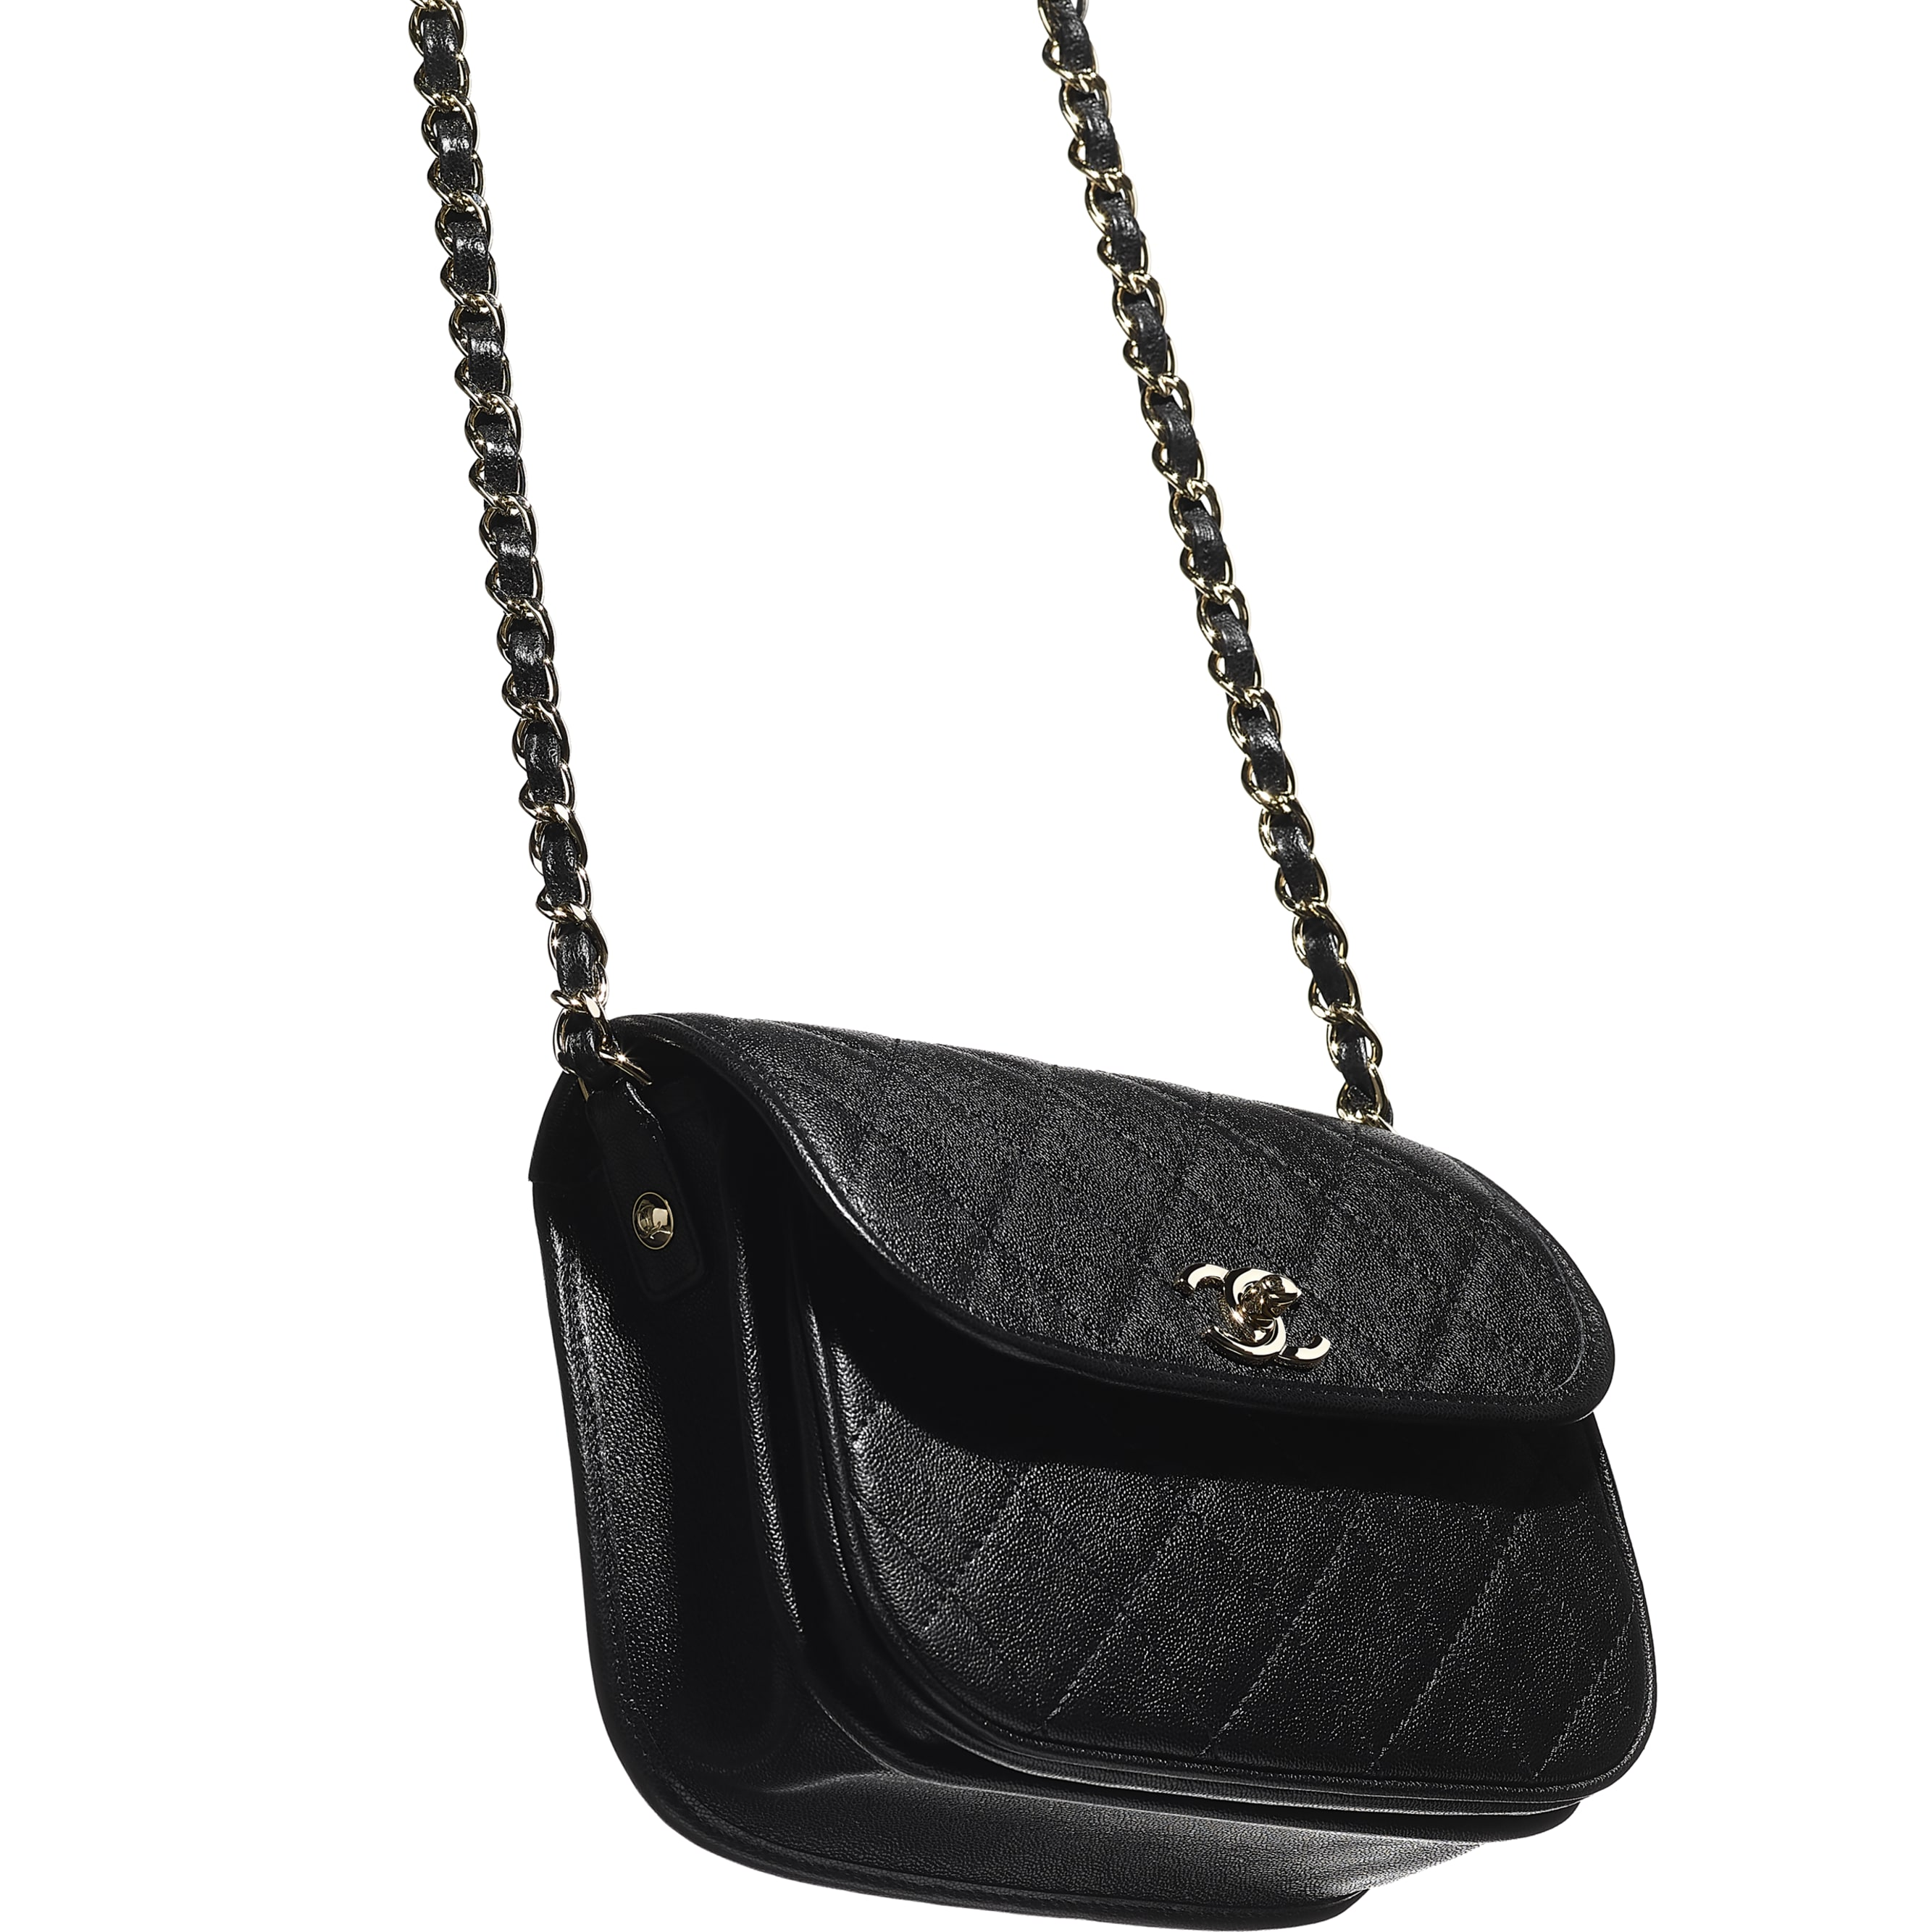 Small Messenger Bag - Black - Grained Calfskin & Gold-Tone Metal - CHANEL - Extra view - see standard sized version